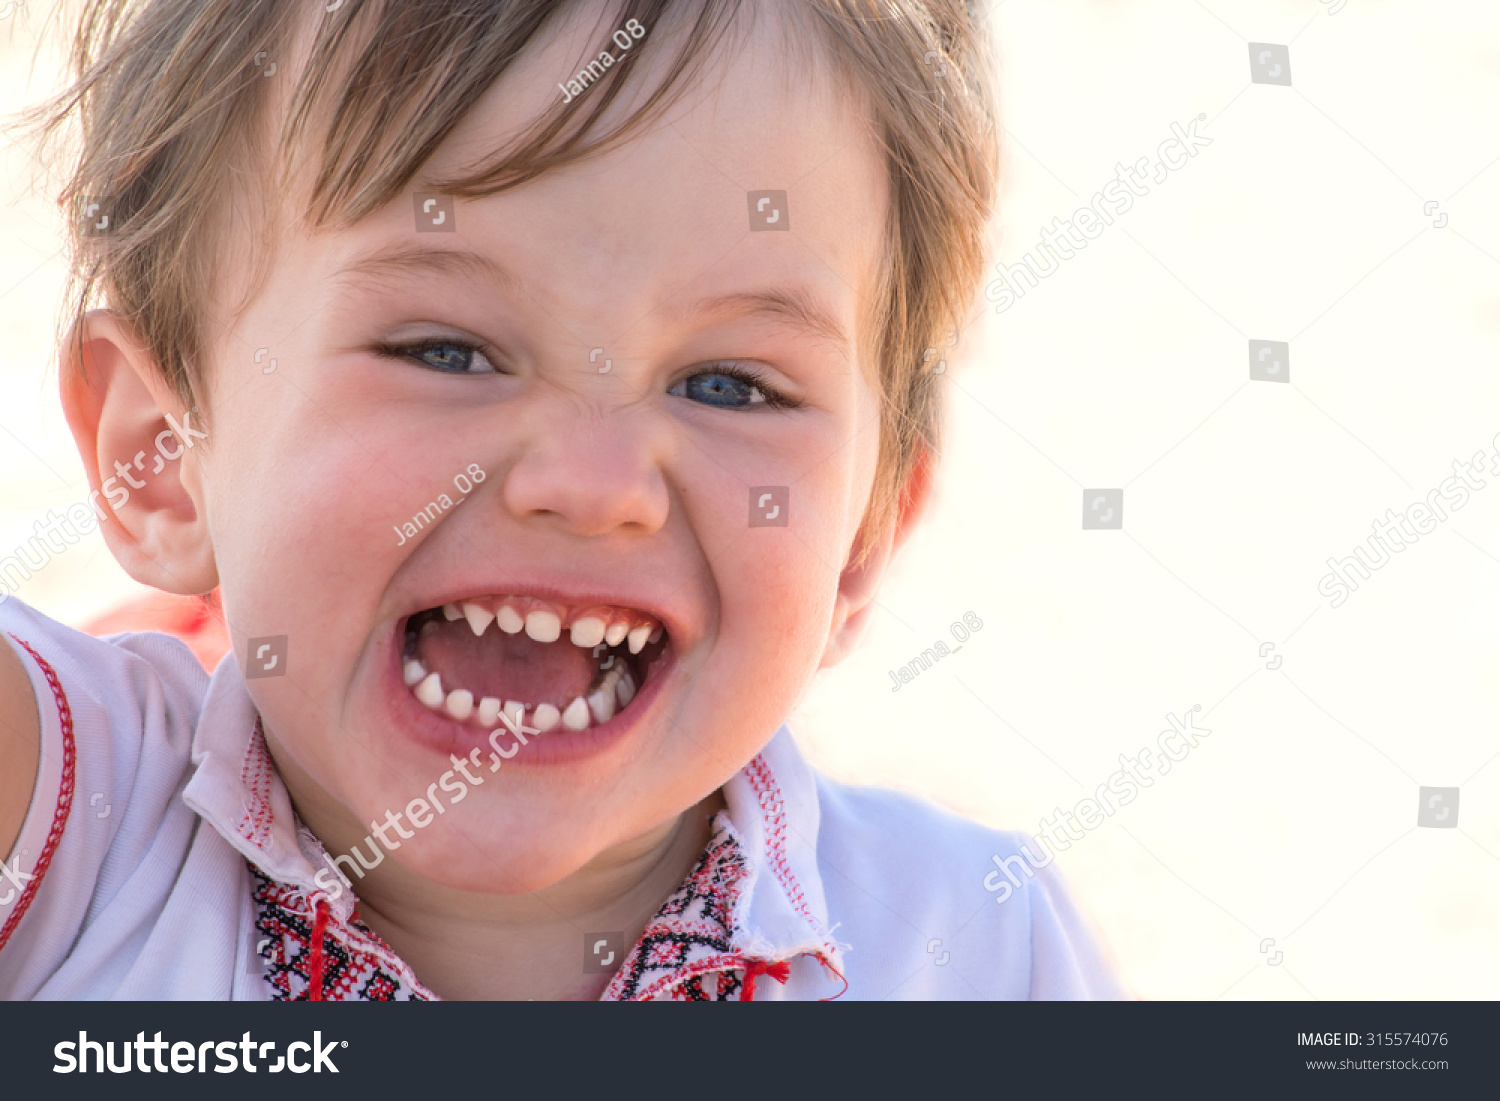 cute happy little child healthy baby stock photo (100% legal